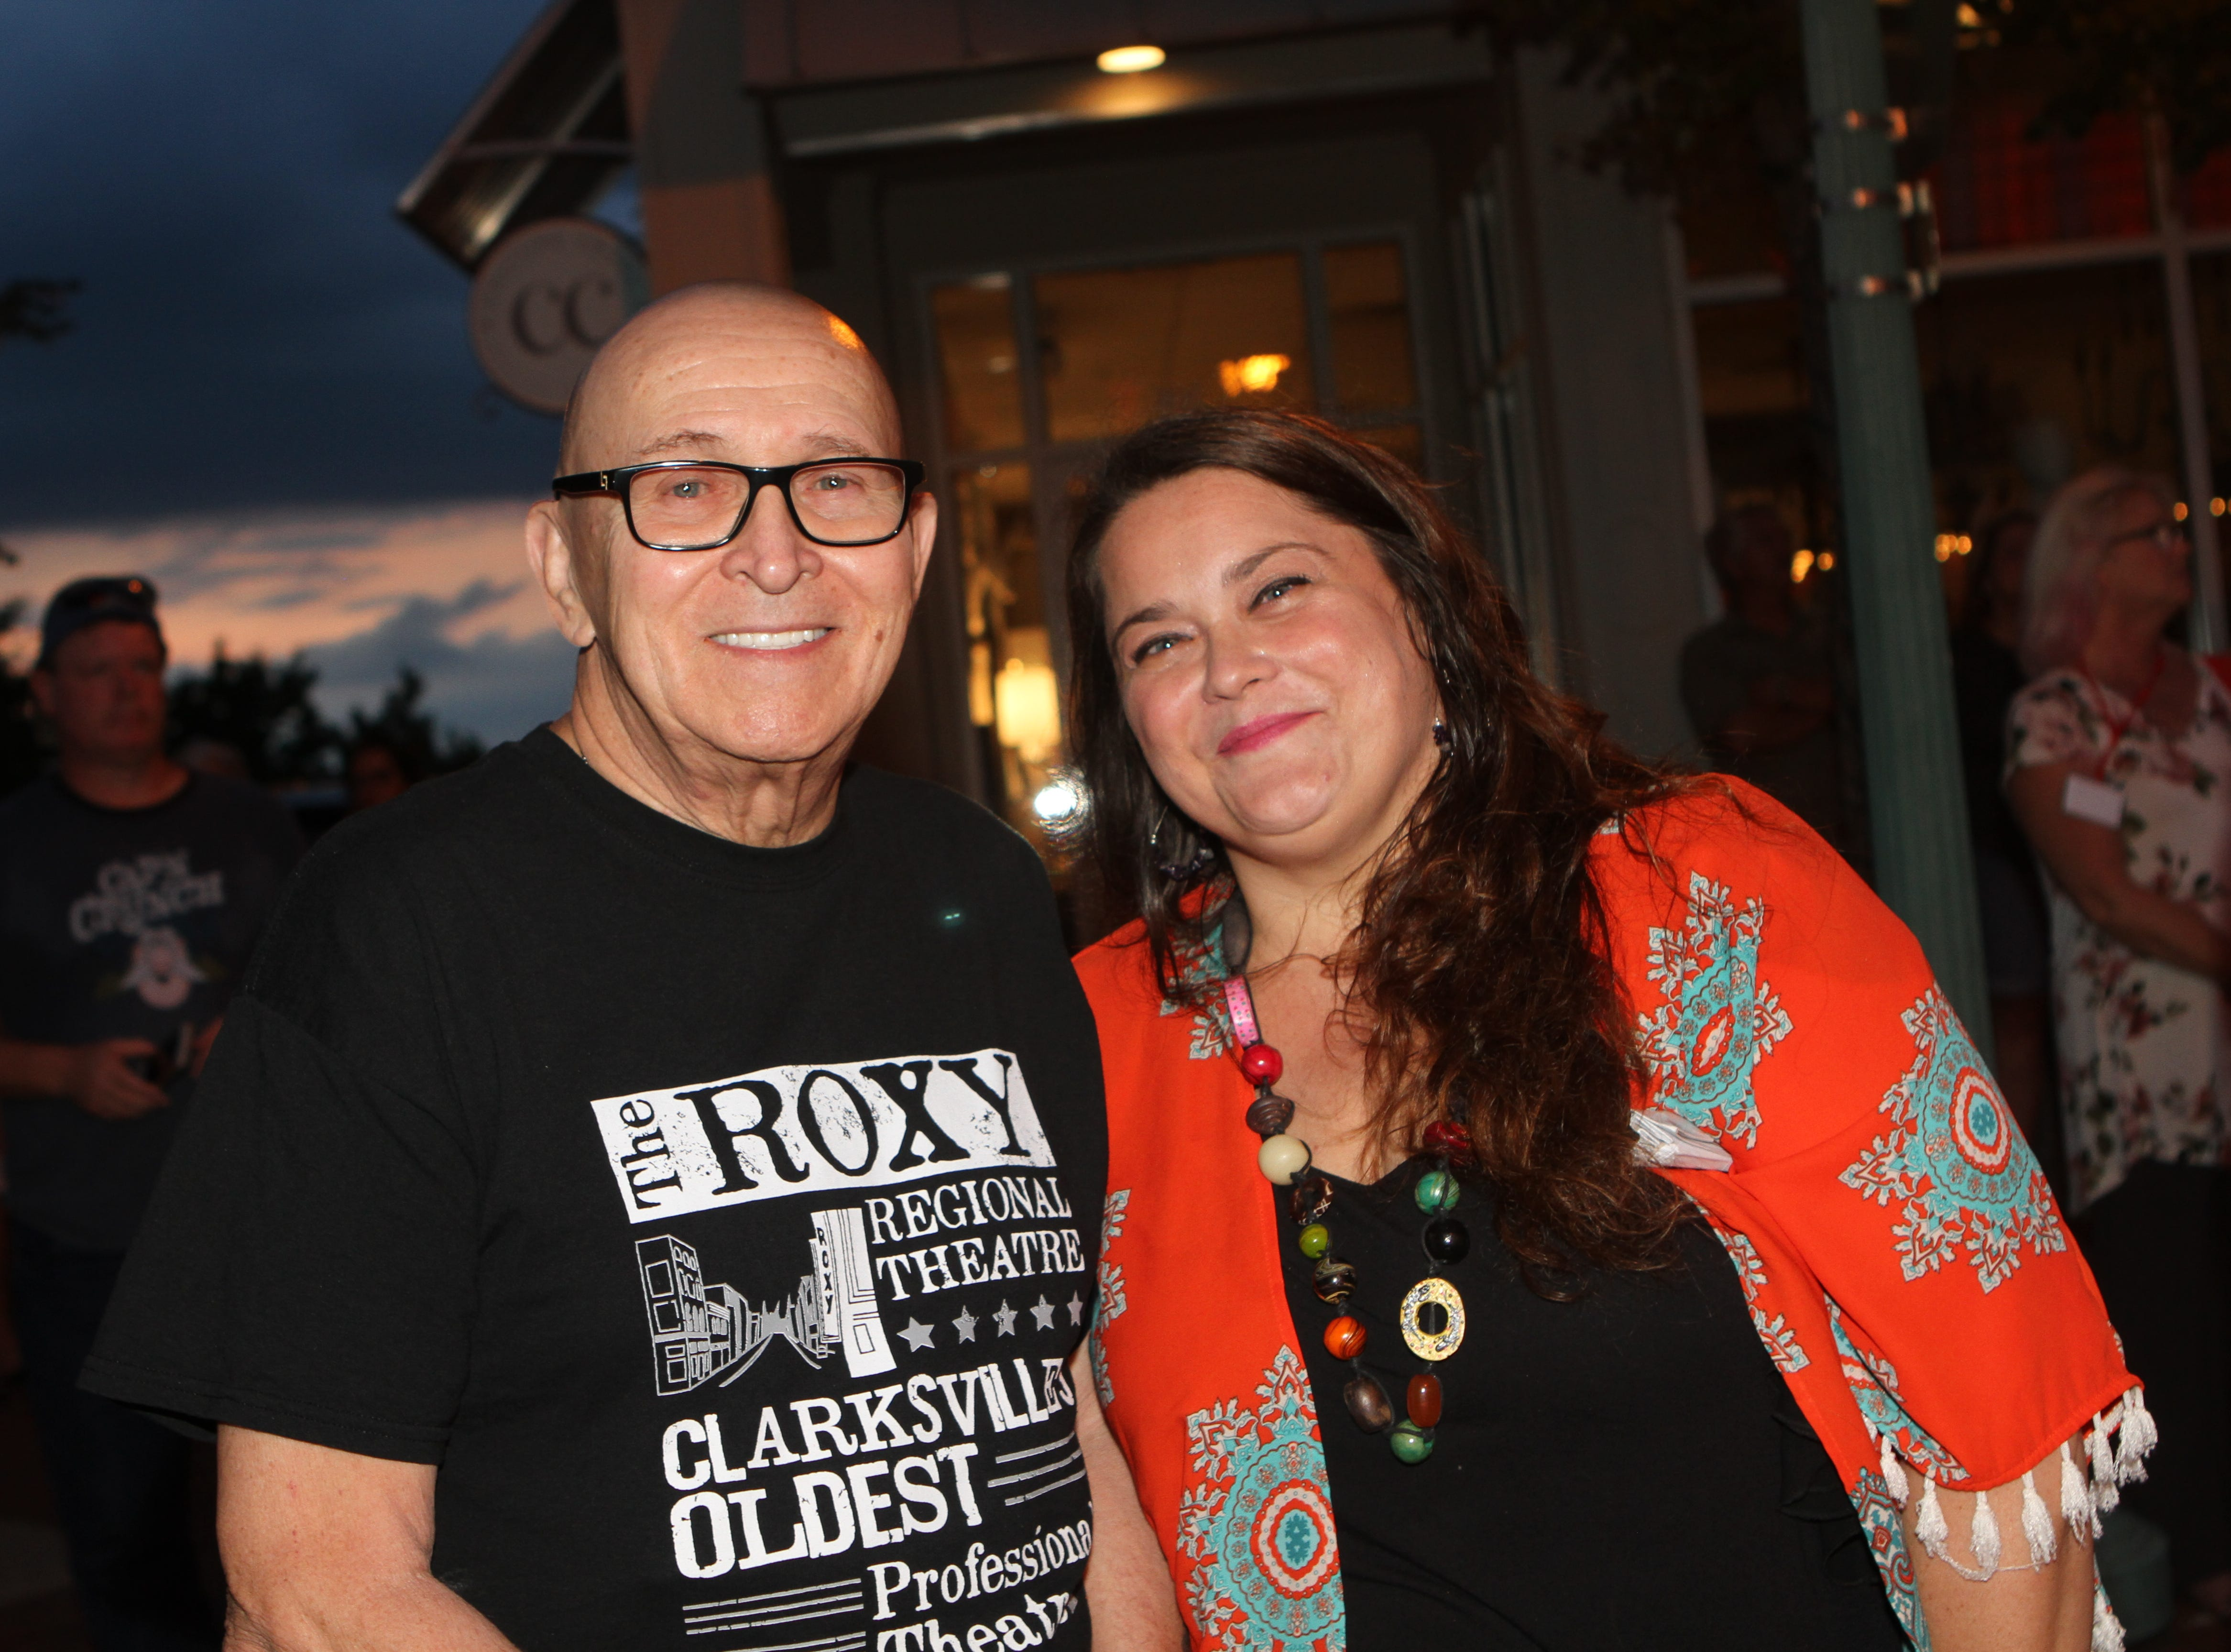 Walter Marczak and Nicole O'Connor at the Roxy Regional Theatre for the United Way 2018 campaign fundraising event Thursday night.